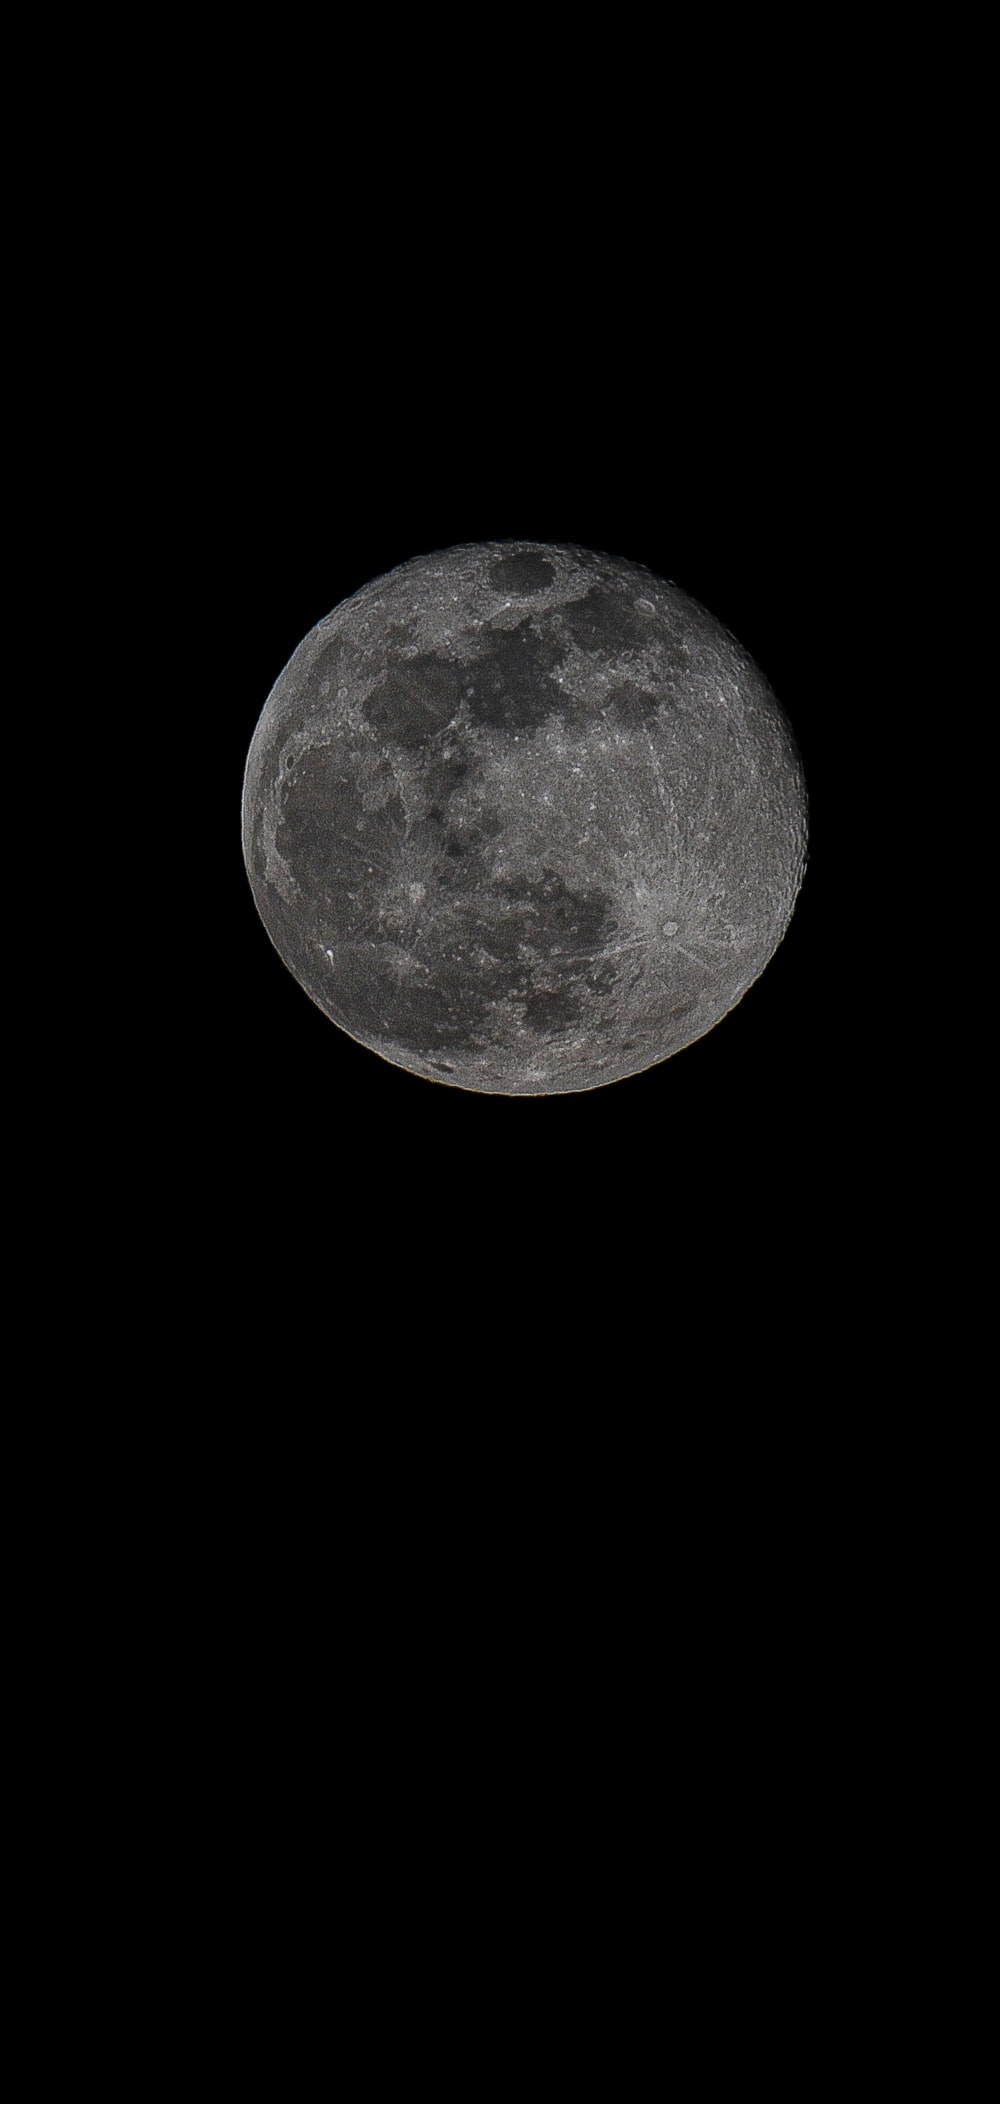 full moon in dark background